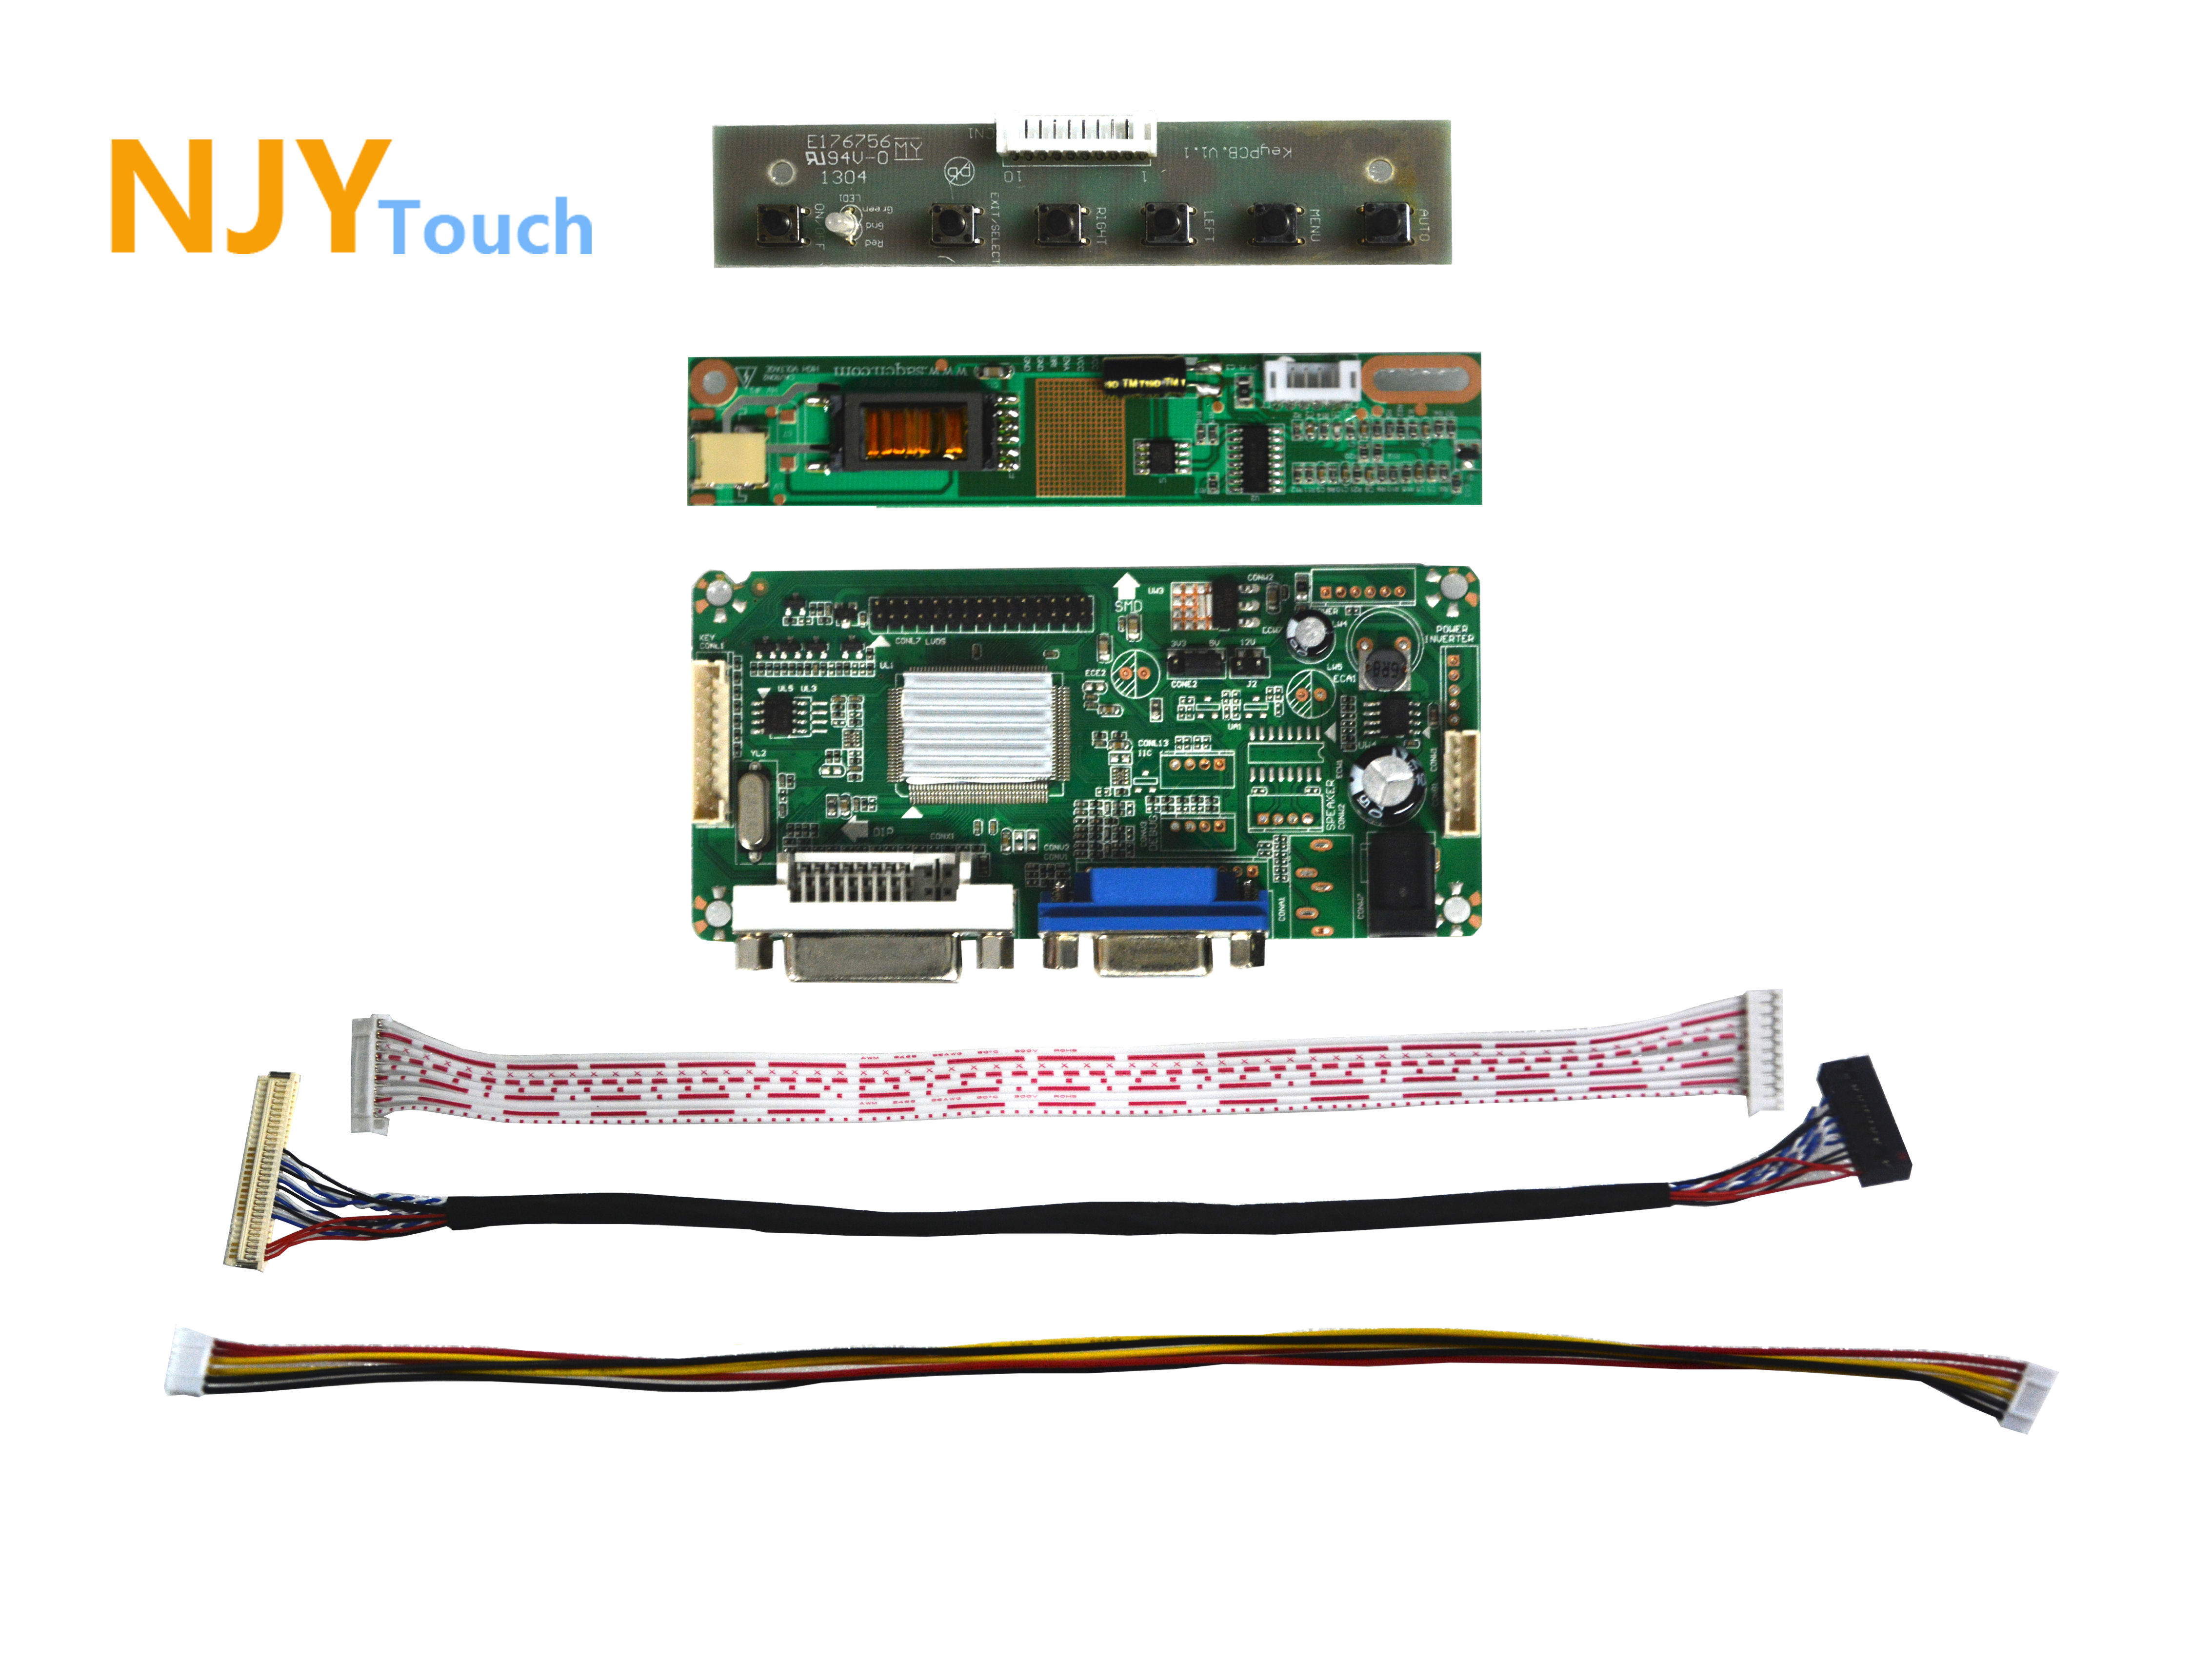 NJYTouch LM.R61 DVI VGA LCD Controller Driver Board For 14.1inch LP141WX1-TL01 LTN141W1-L09 1280x800 LED Screen